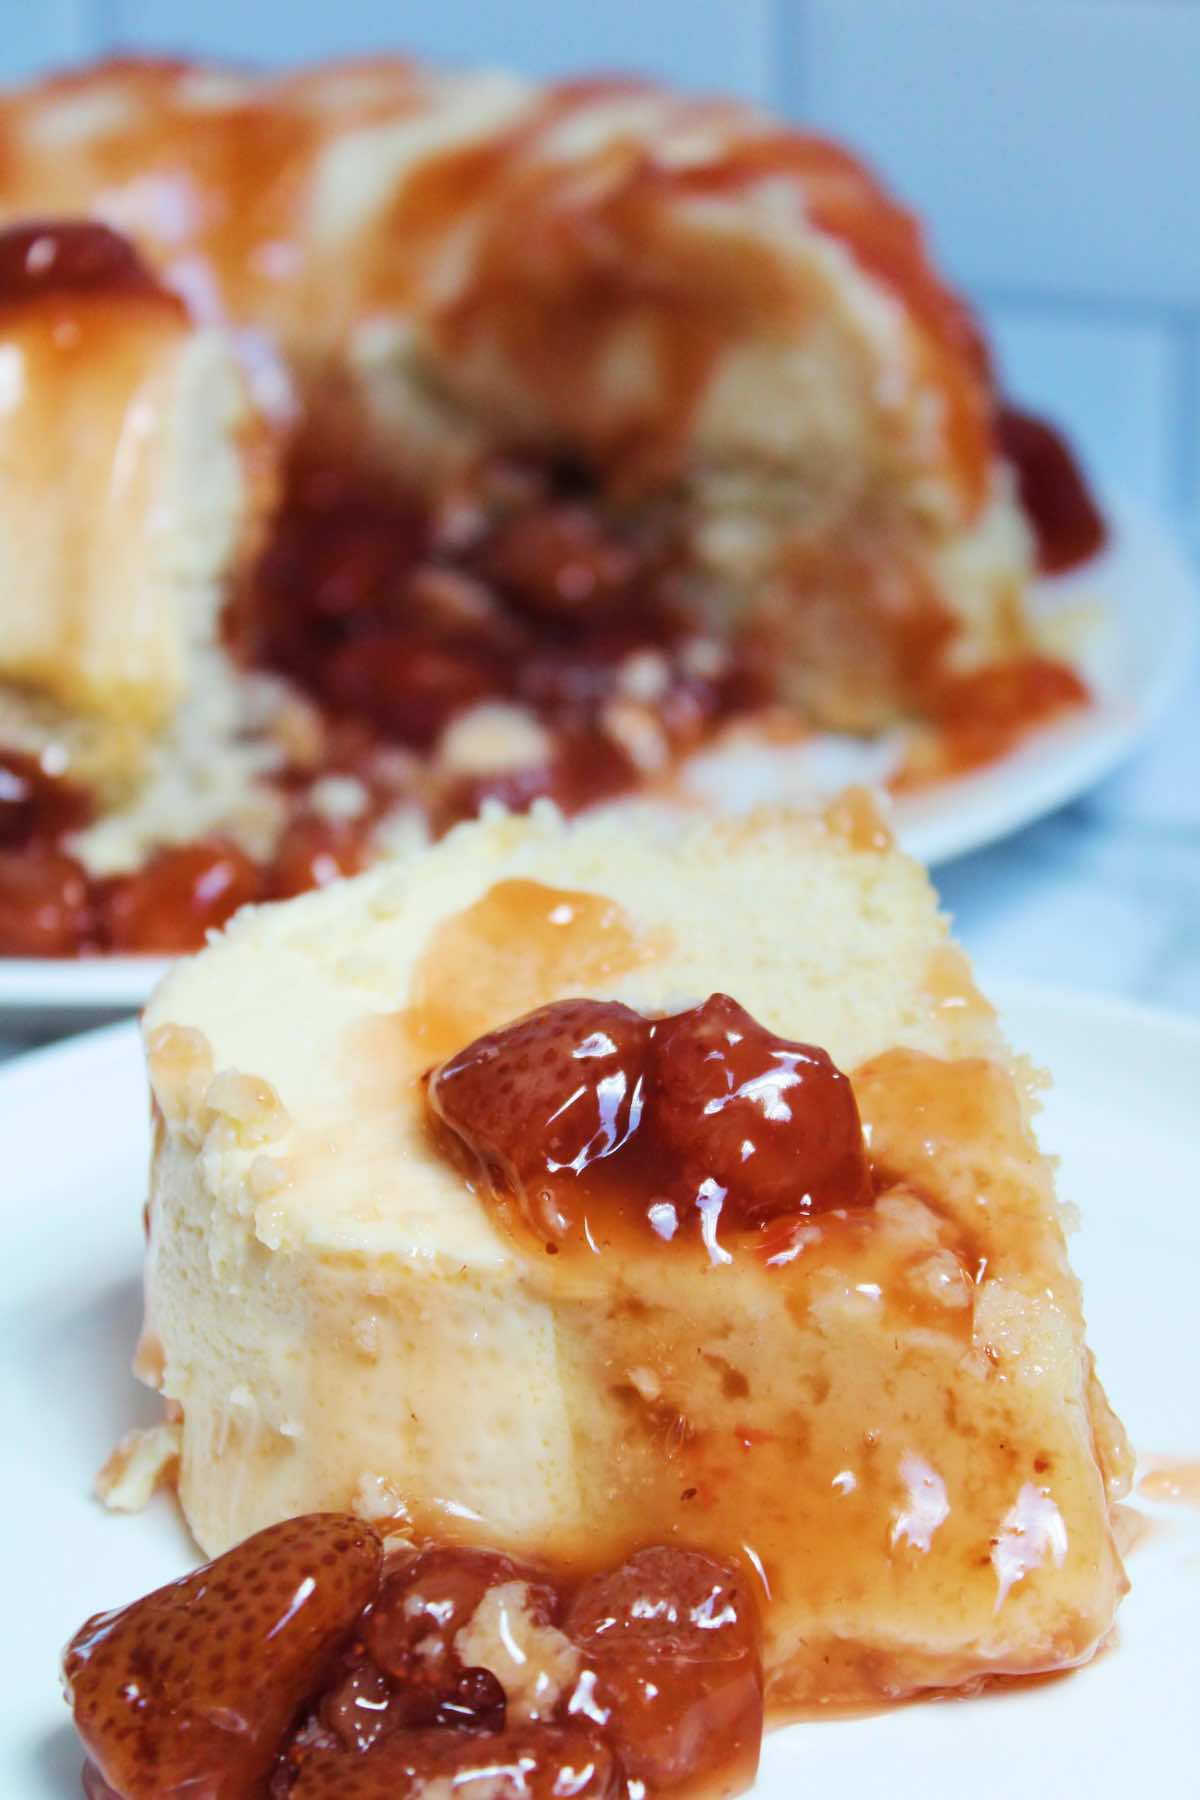 Cutting a slice of bizcocho (cake) with flan.